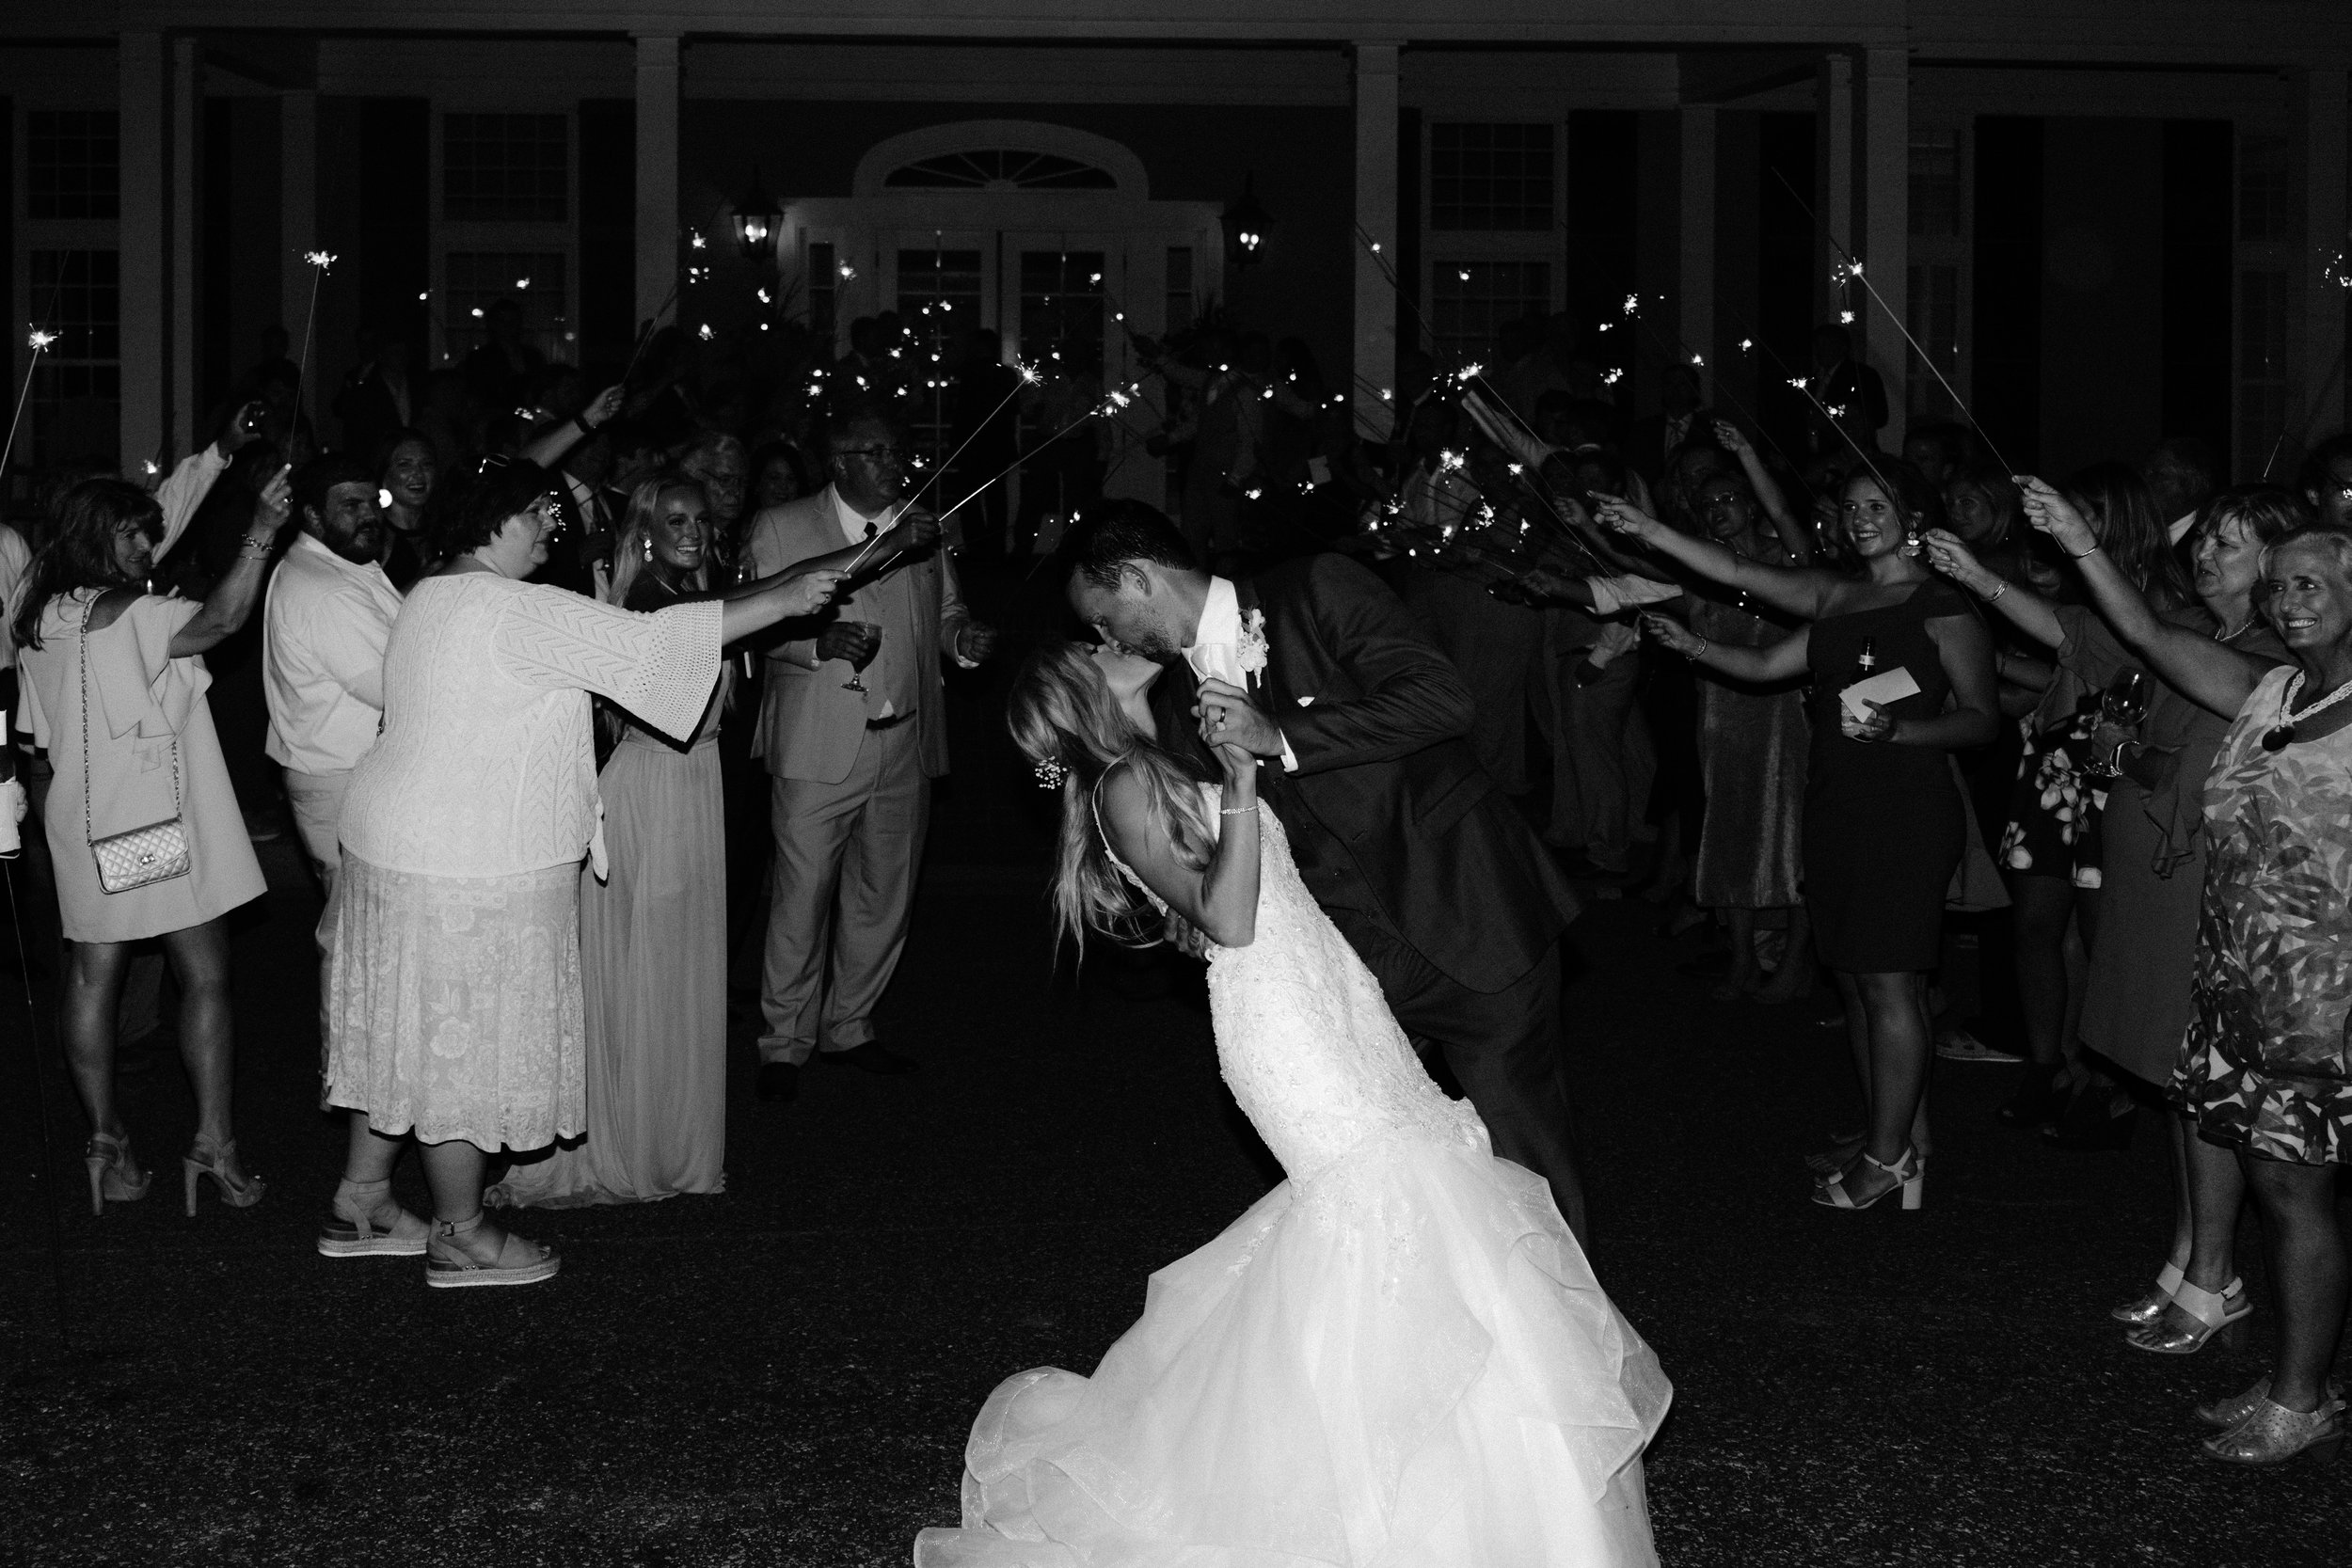 weddingphotos_43.jpg